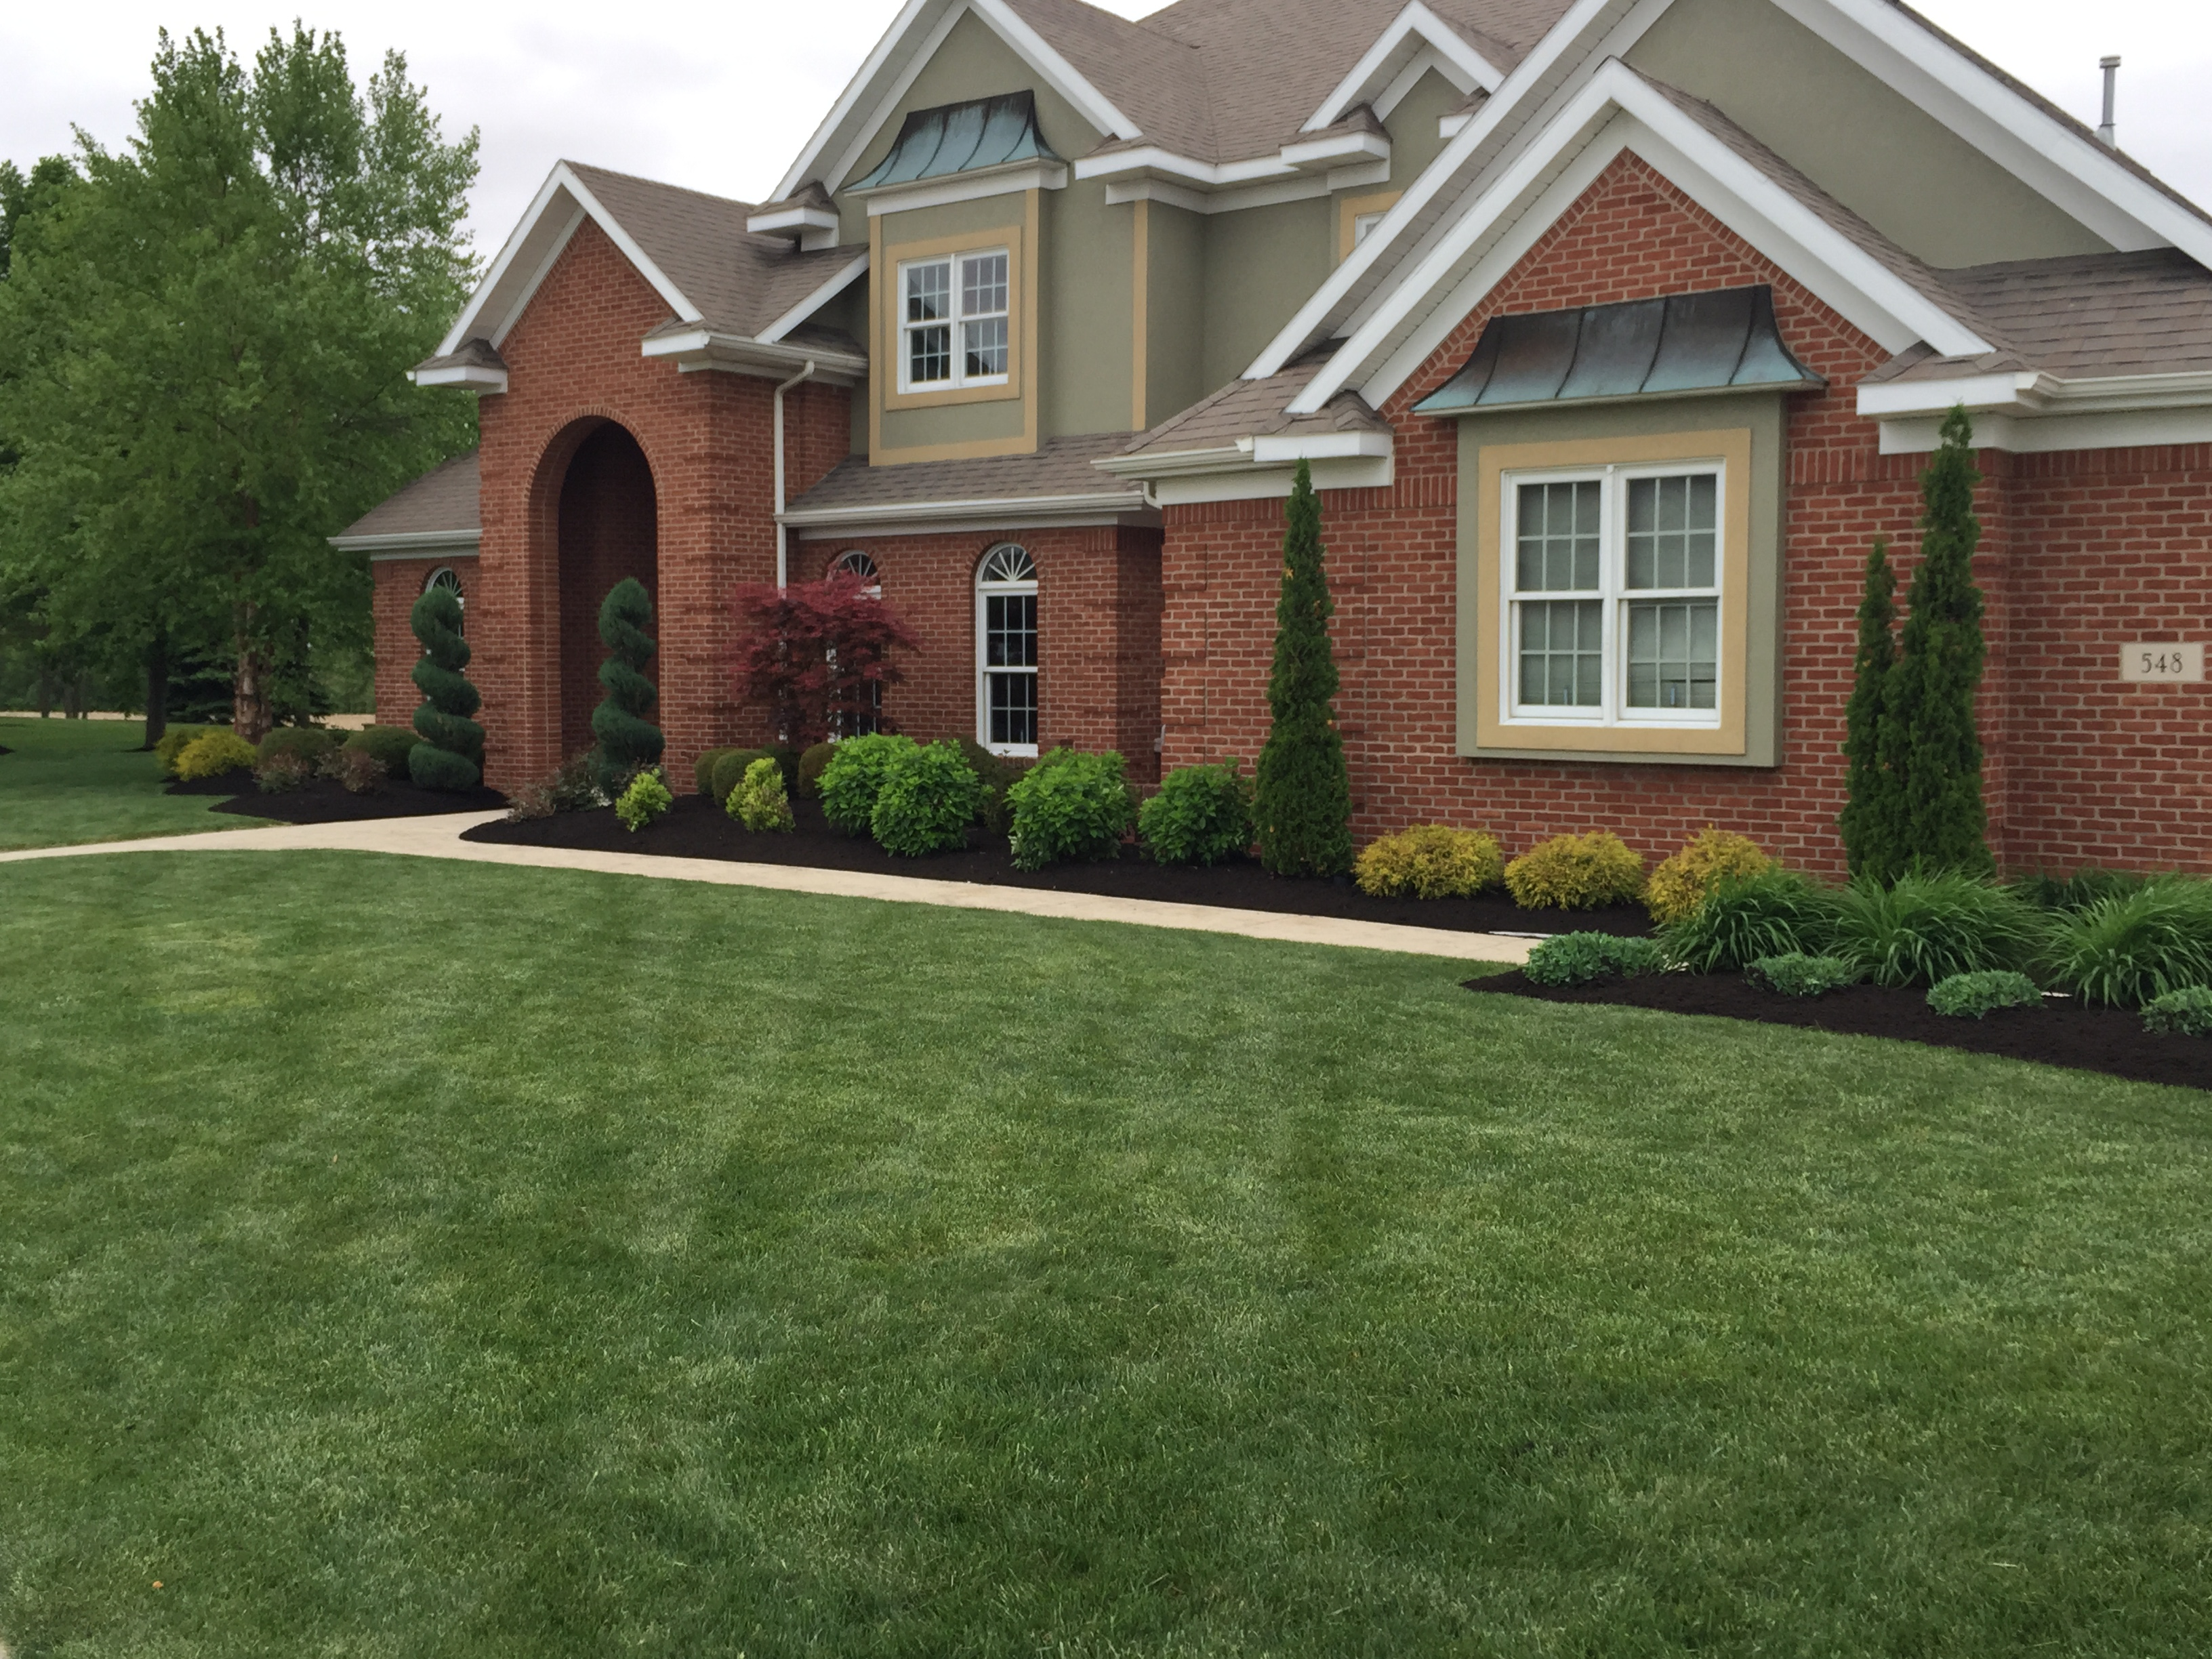 Landscaping curb appeal landscape lawncare for Curb appeal landscaping